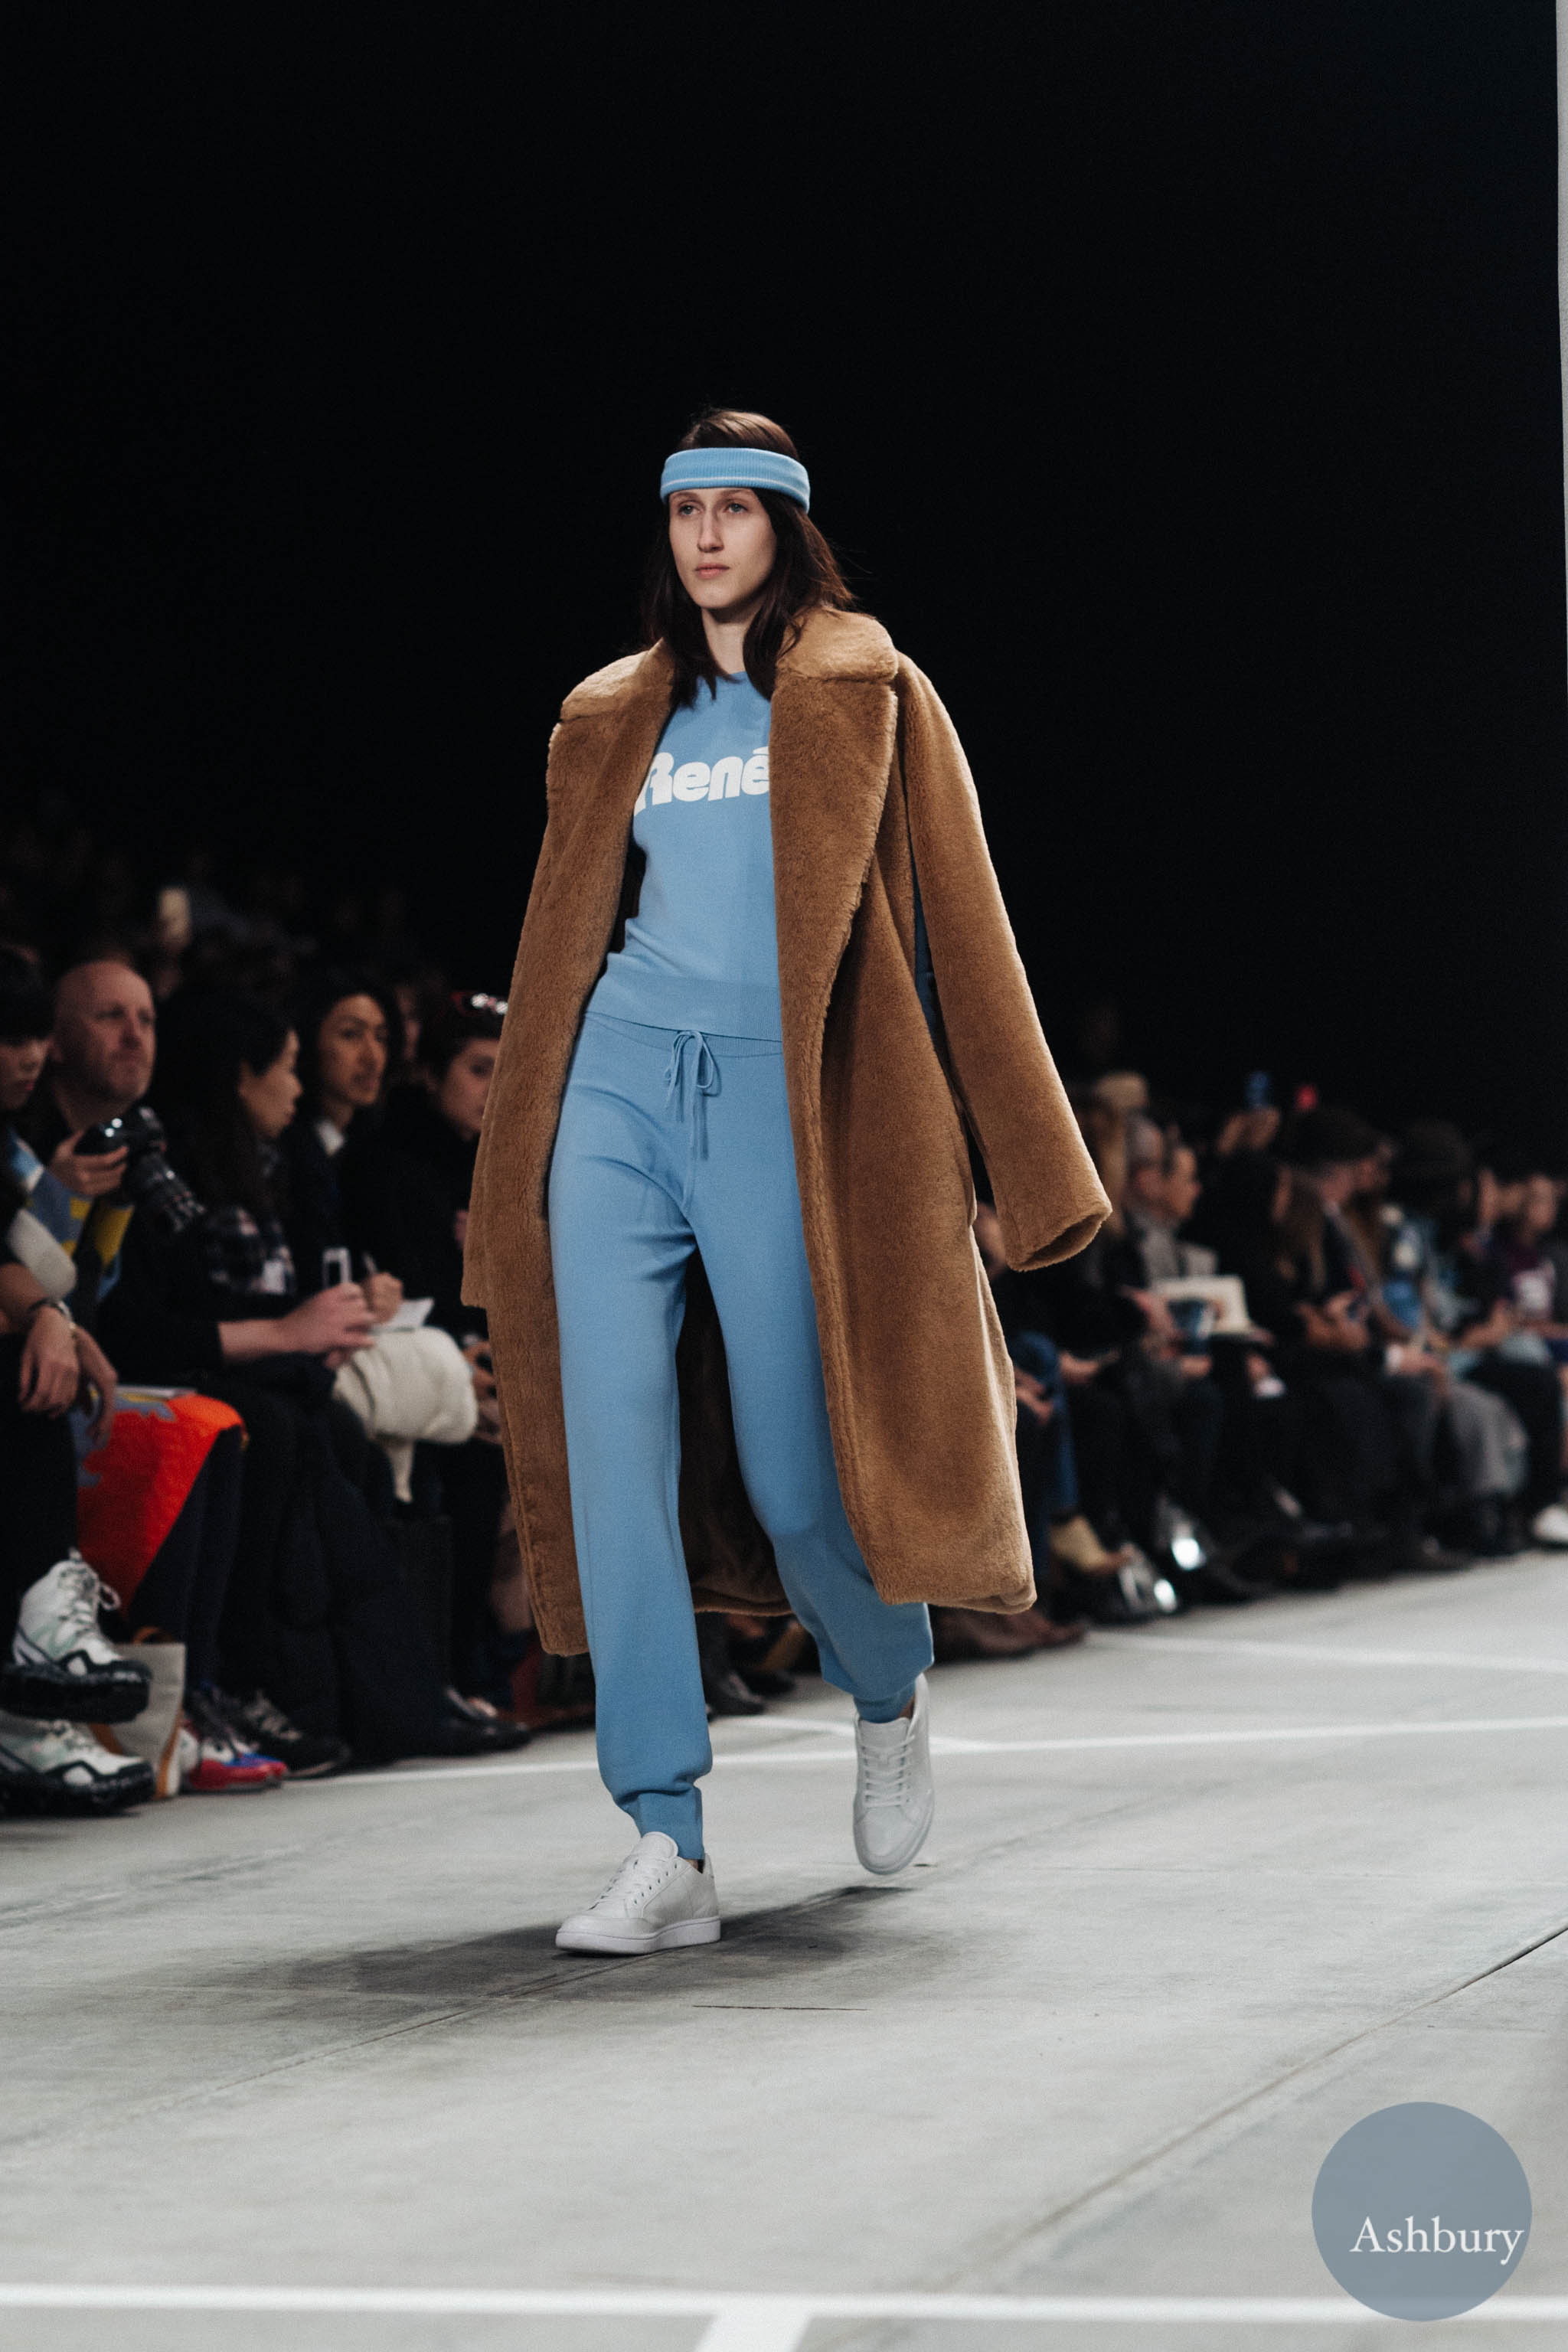 lacoste fw15 - anna cleveland